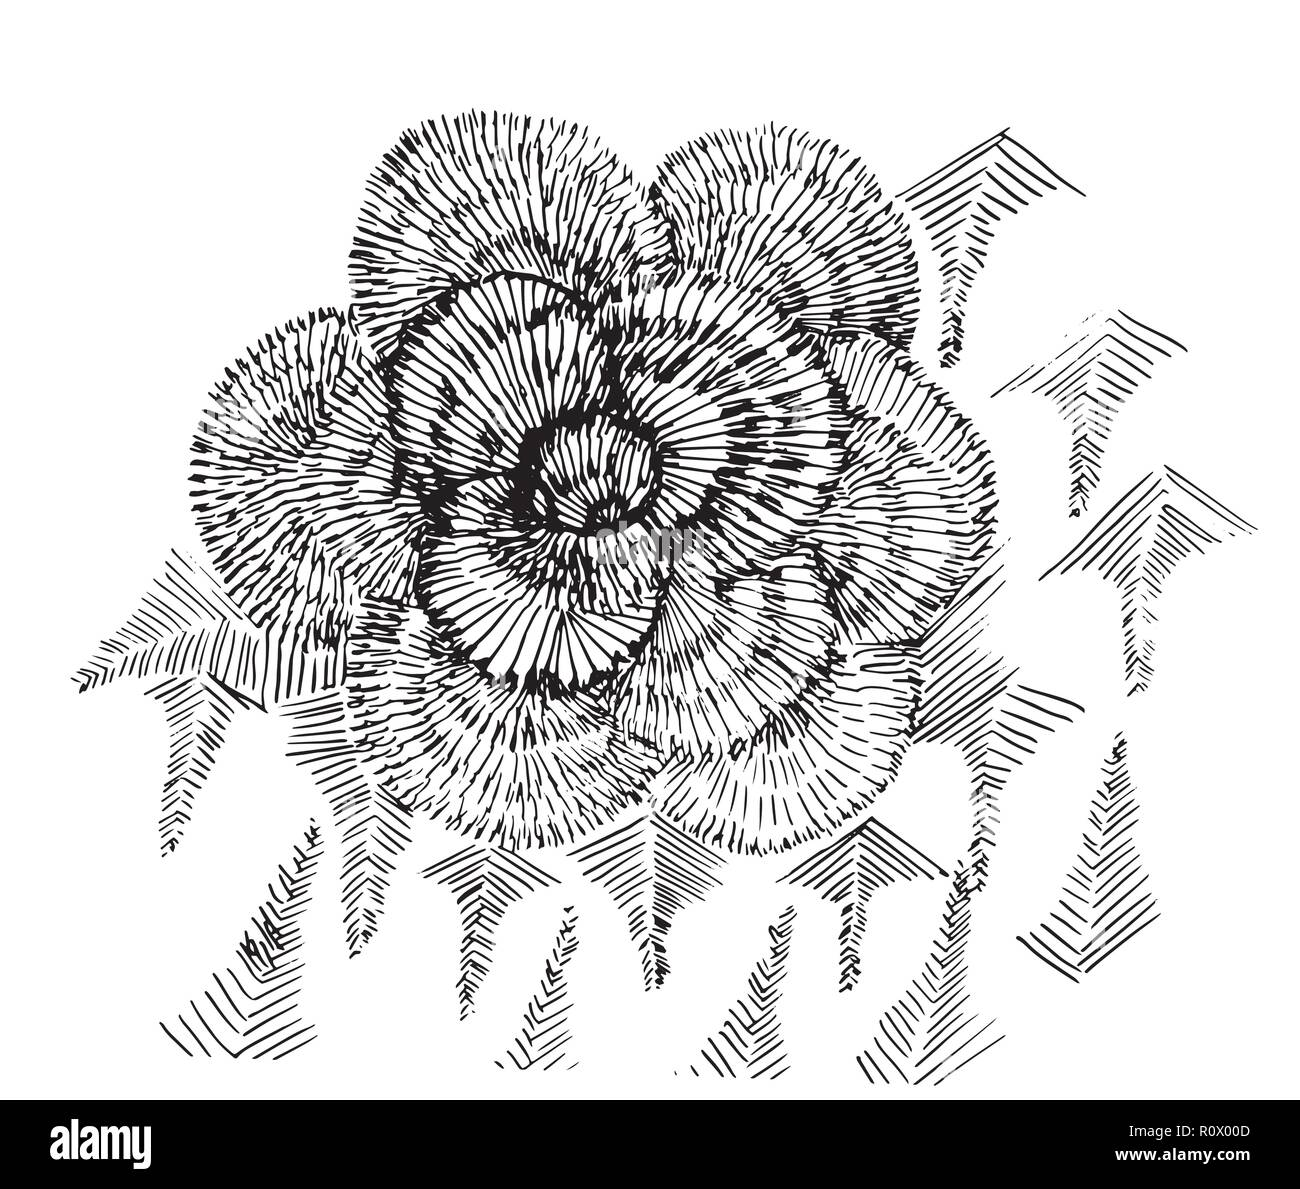 Black and white illustration of psychedelic flower. - Stock Image